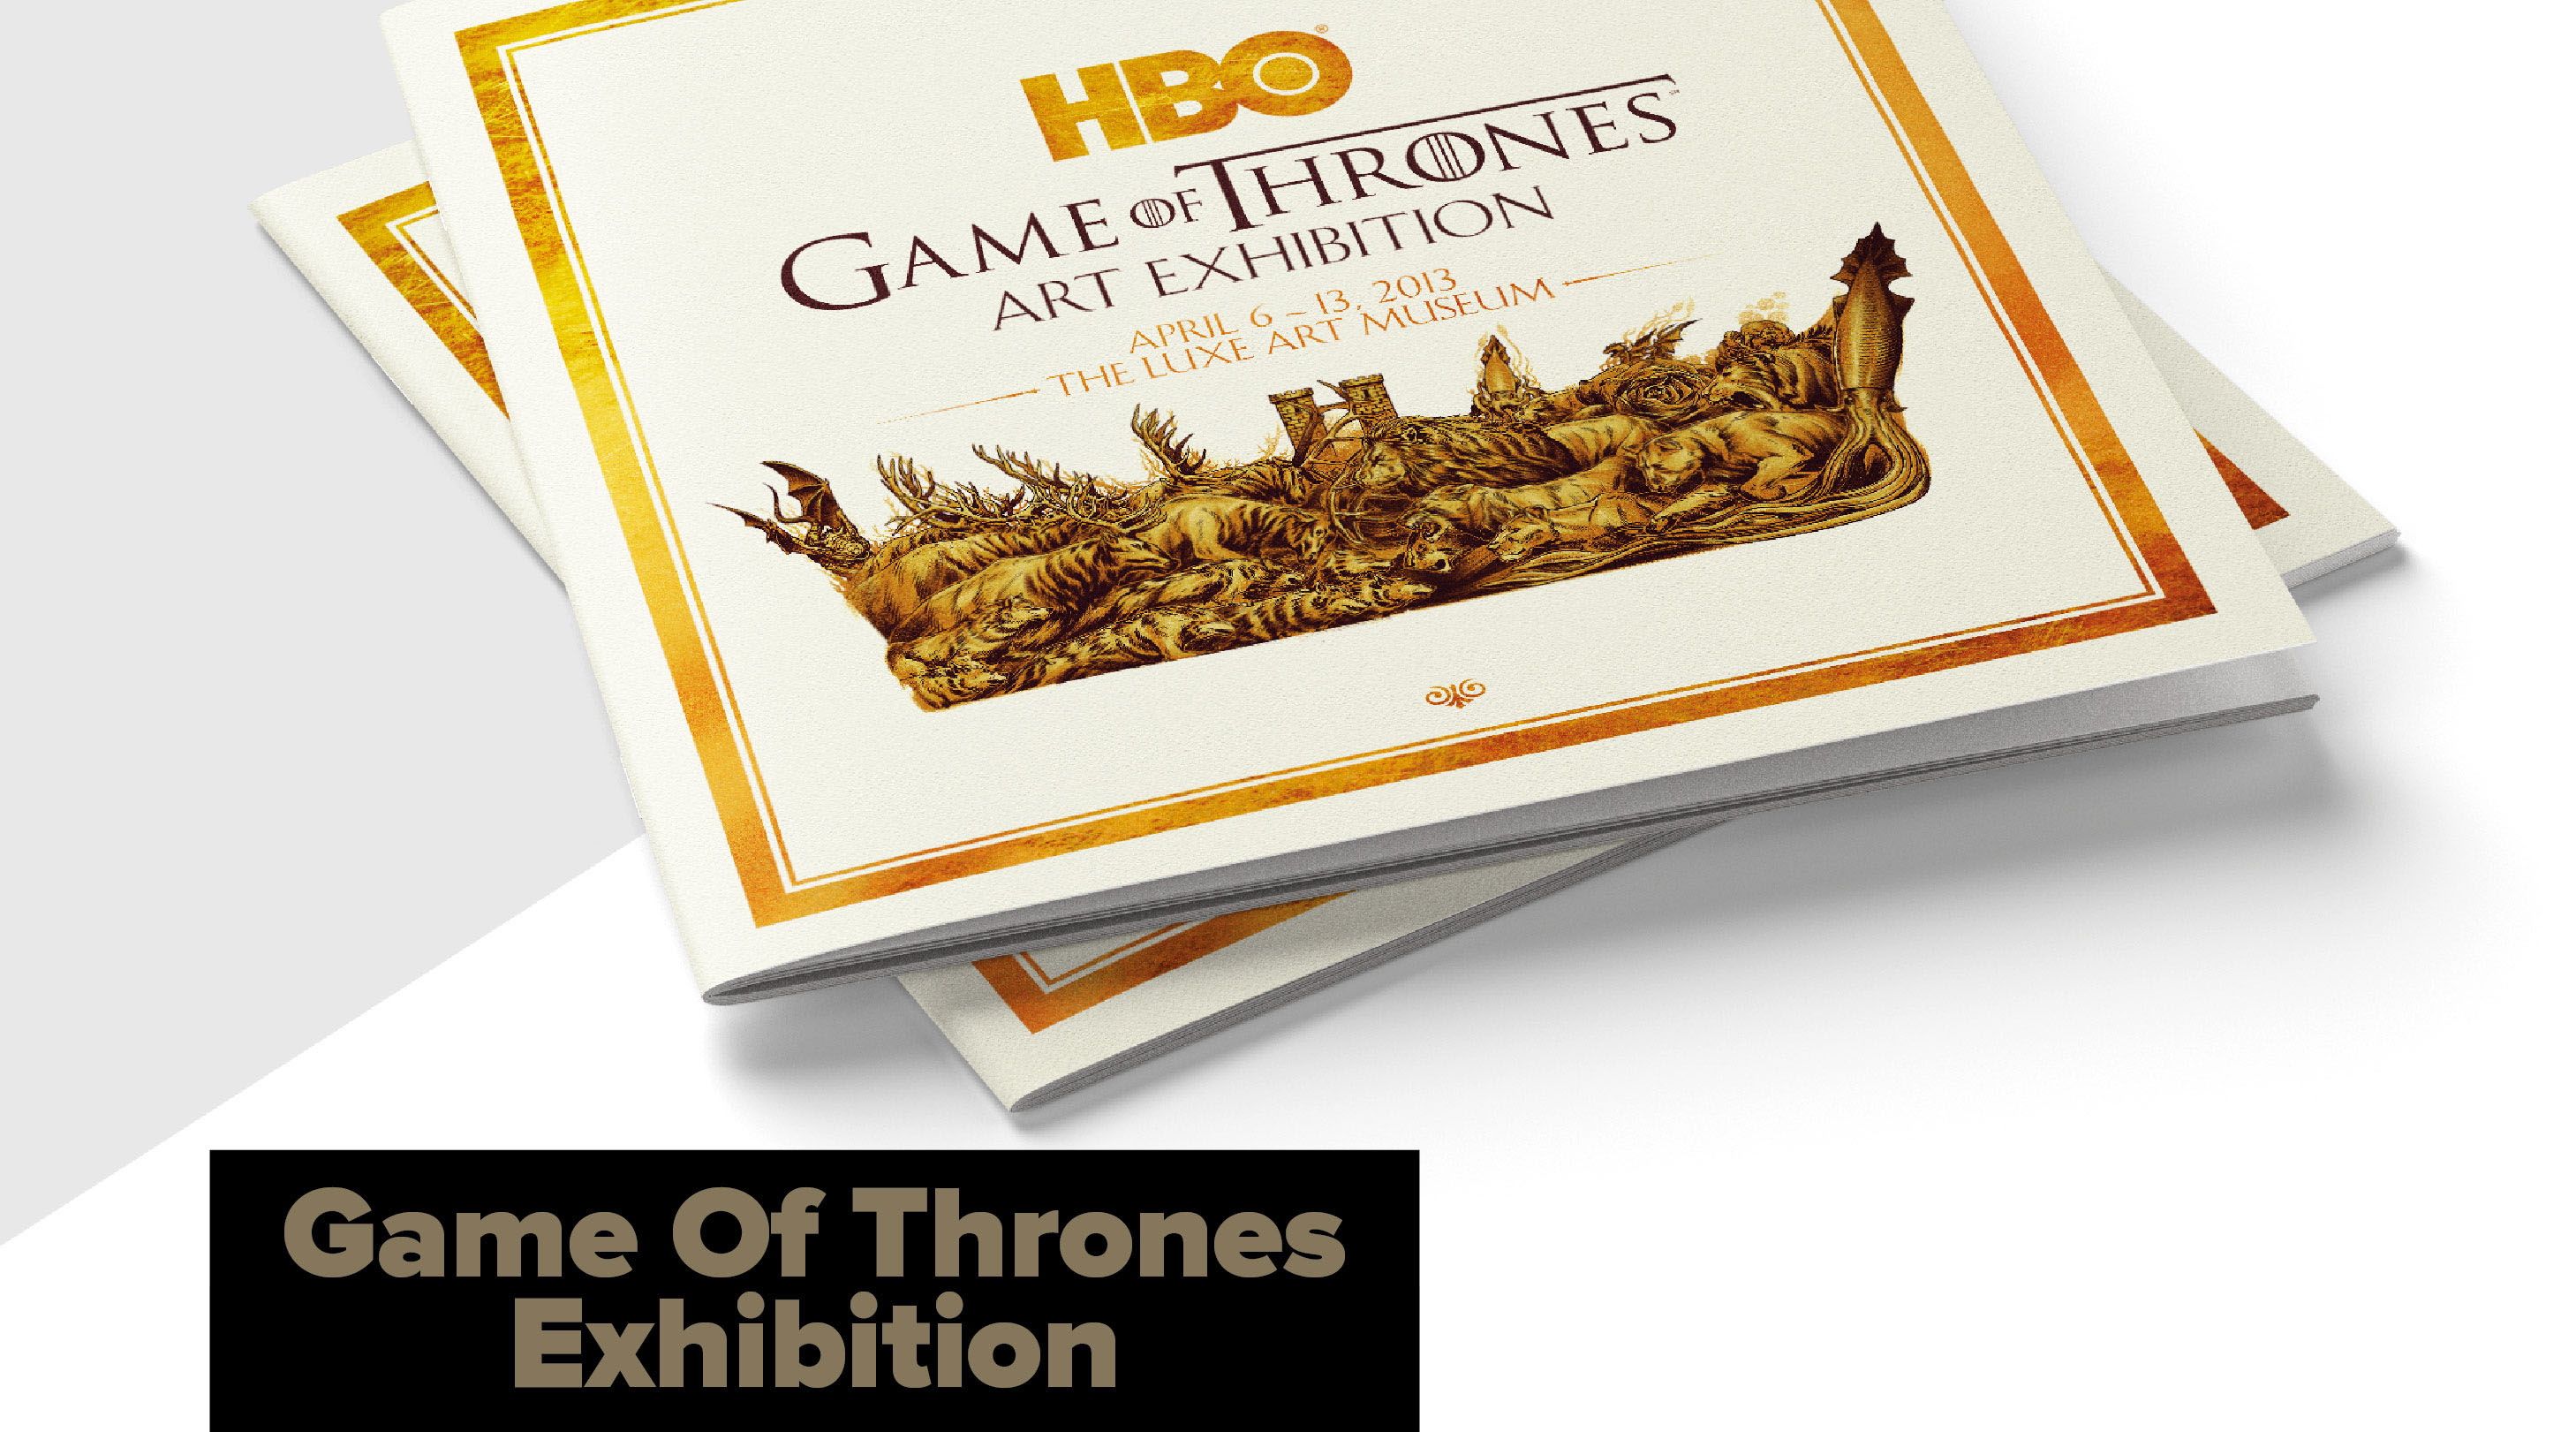 Game Of Thrones Art Exhibition, Singapore